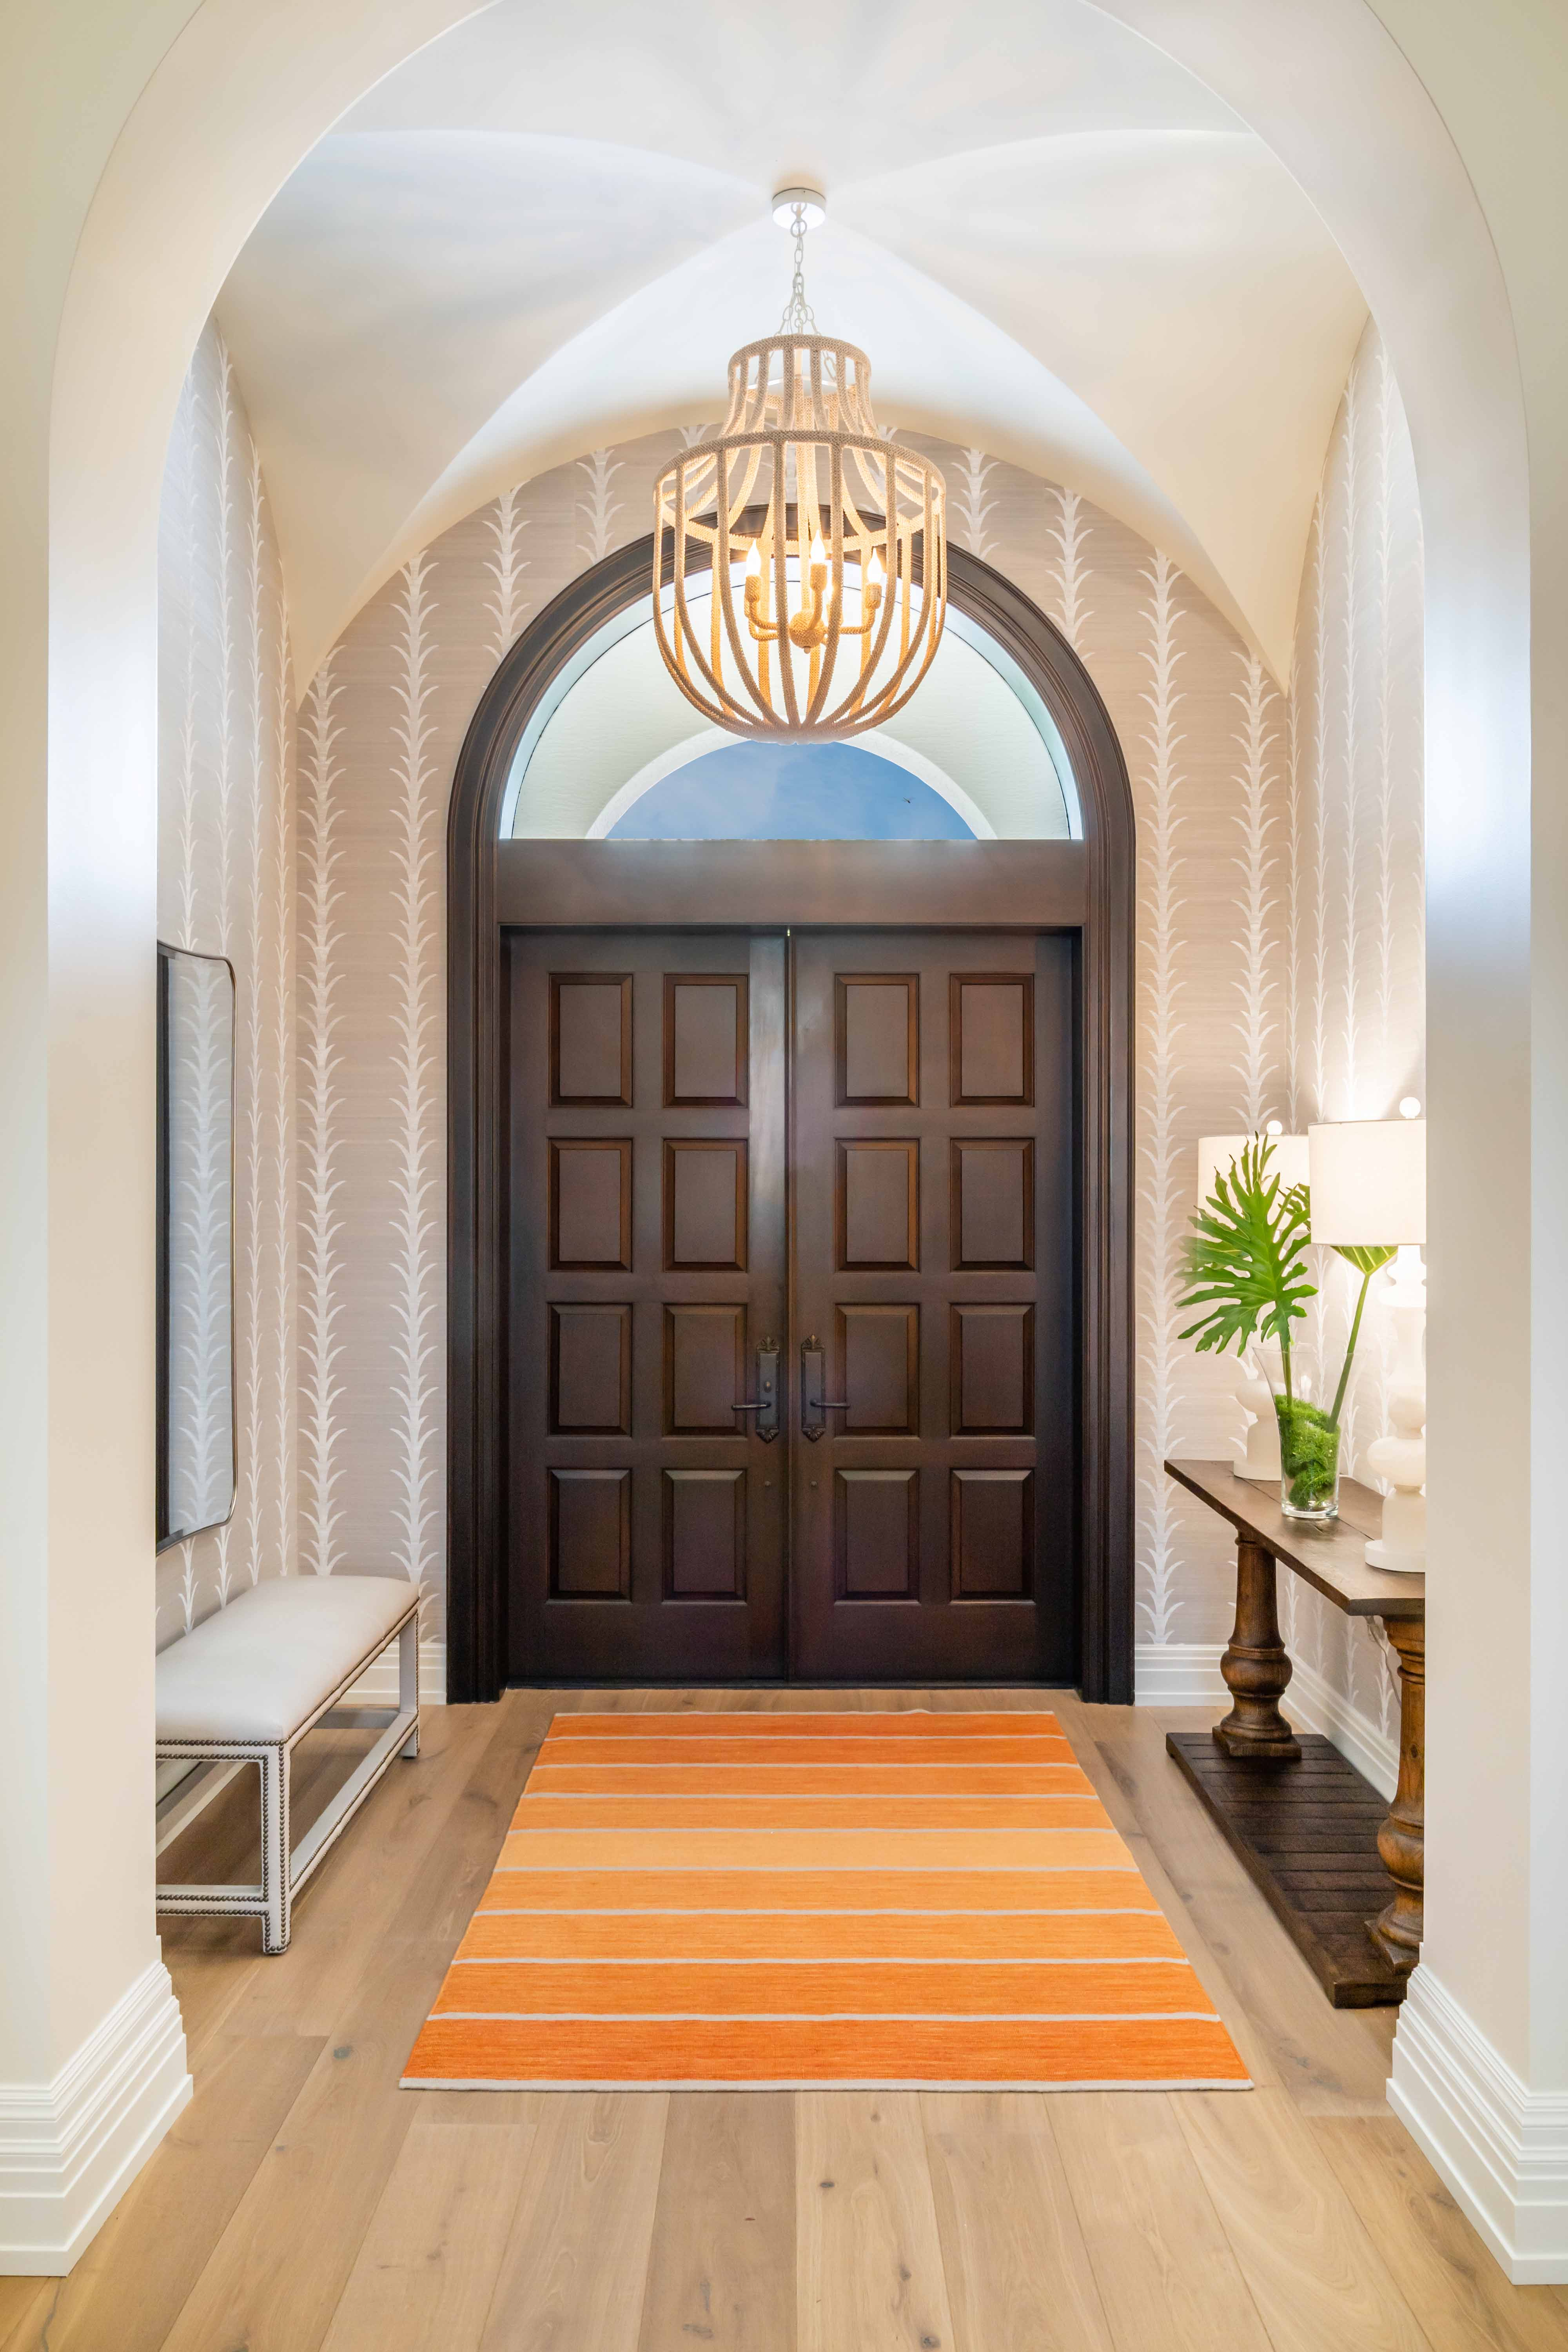 Jeffrey Fisher Home Luxury Interior Design Imagined Home Decor Foyer Entry Design